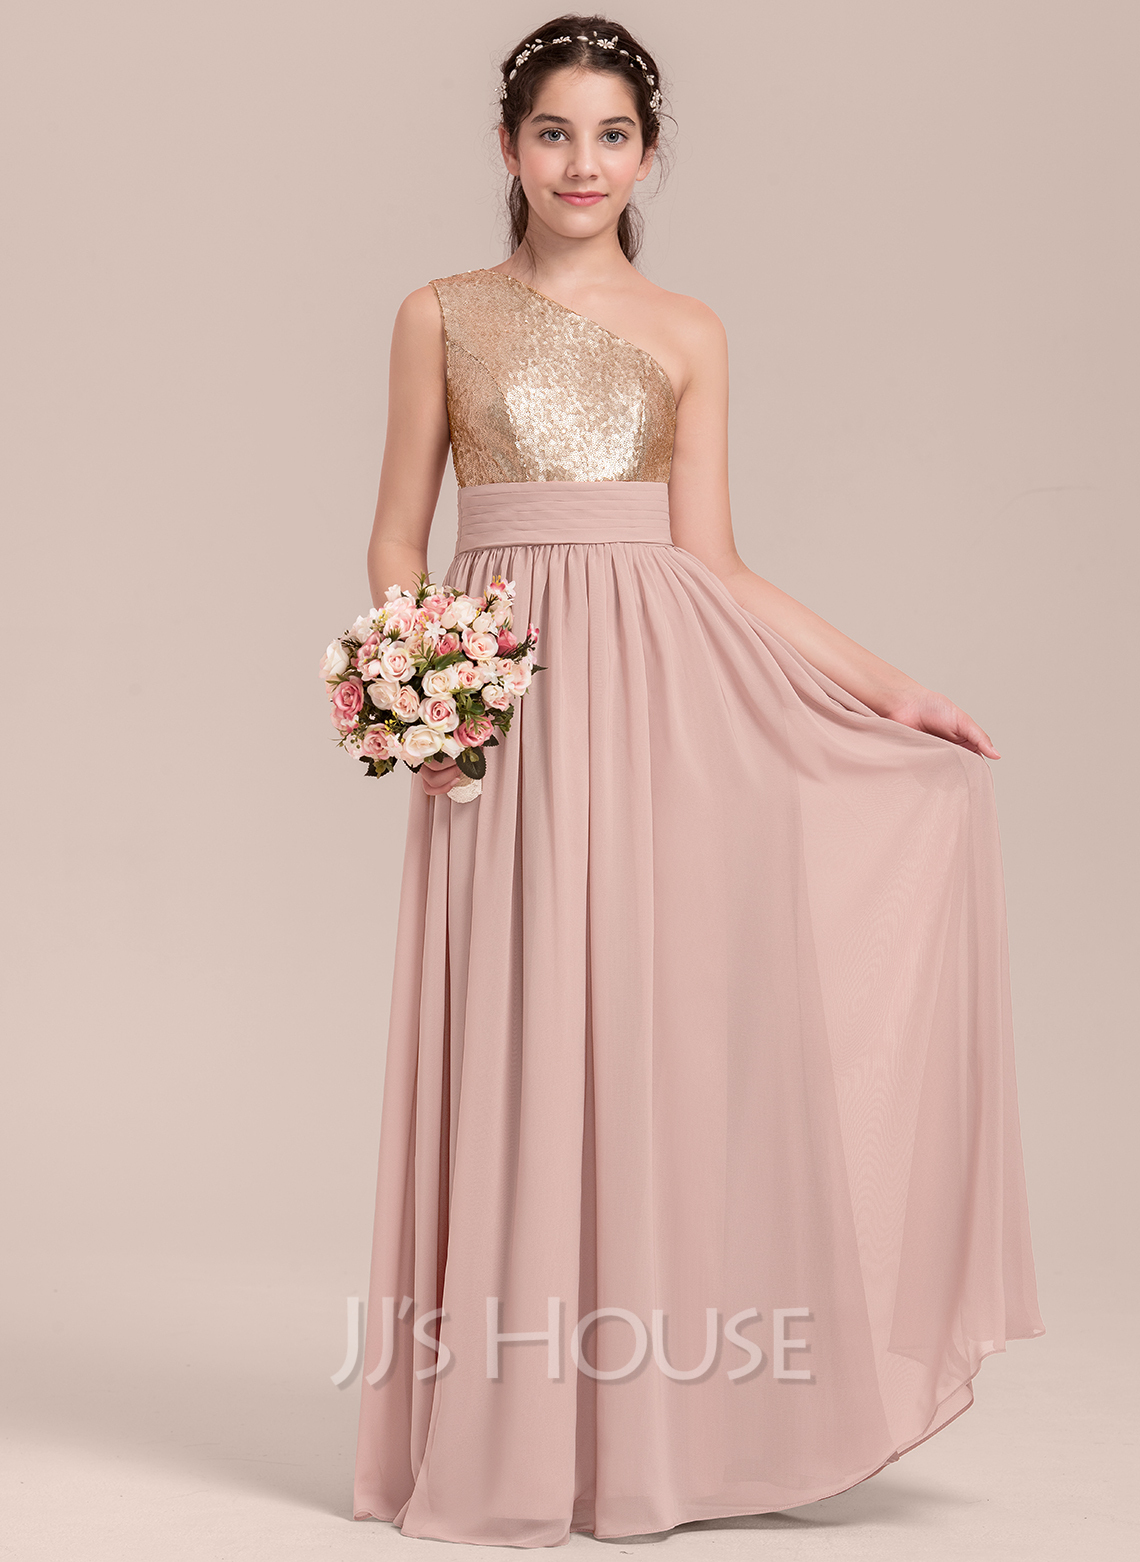 A-Line Princess One-Shoulder Floor-Length Chiffon Junior Bridesmaid Dress  With 9faf066018a4